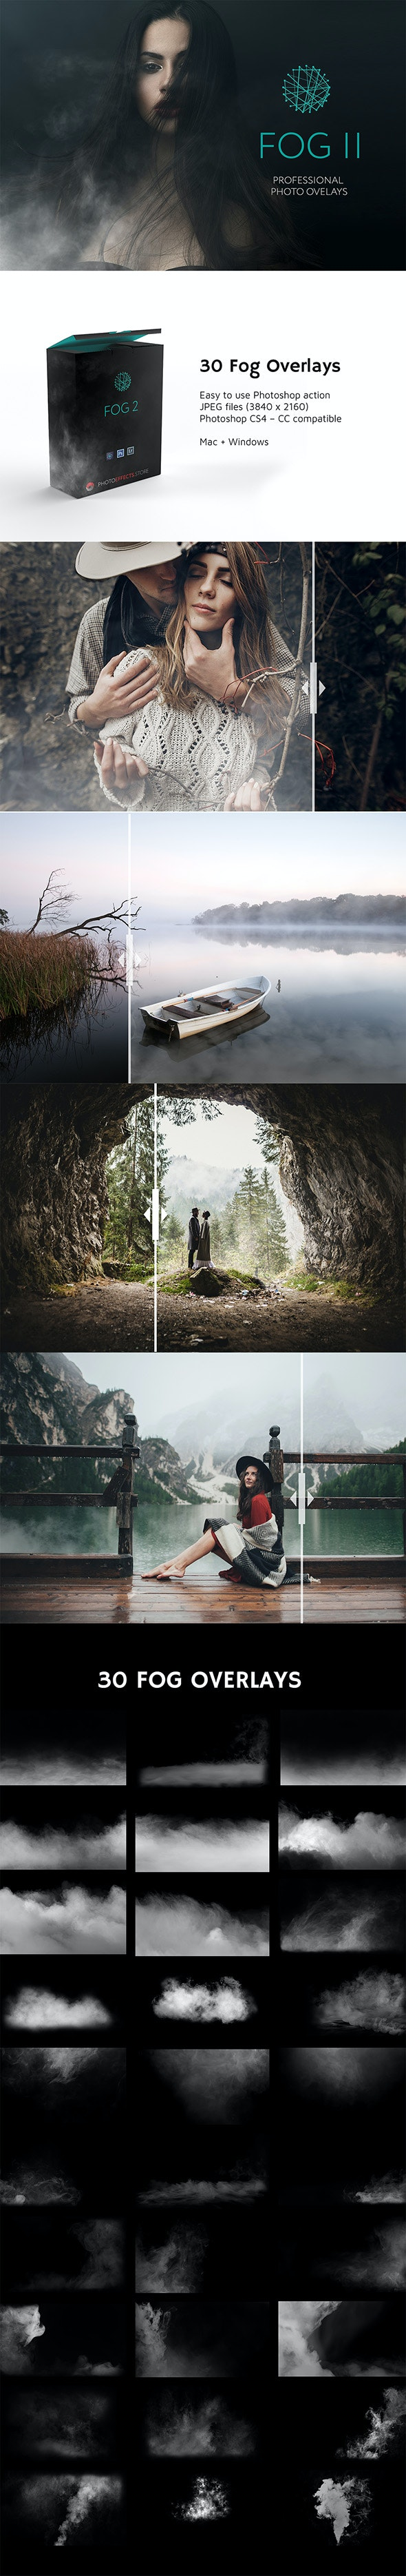 30 Fog Photo Overlays 2.0 - Photo Effects Actions